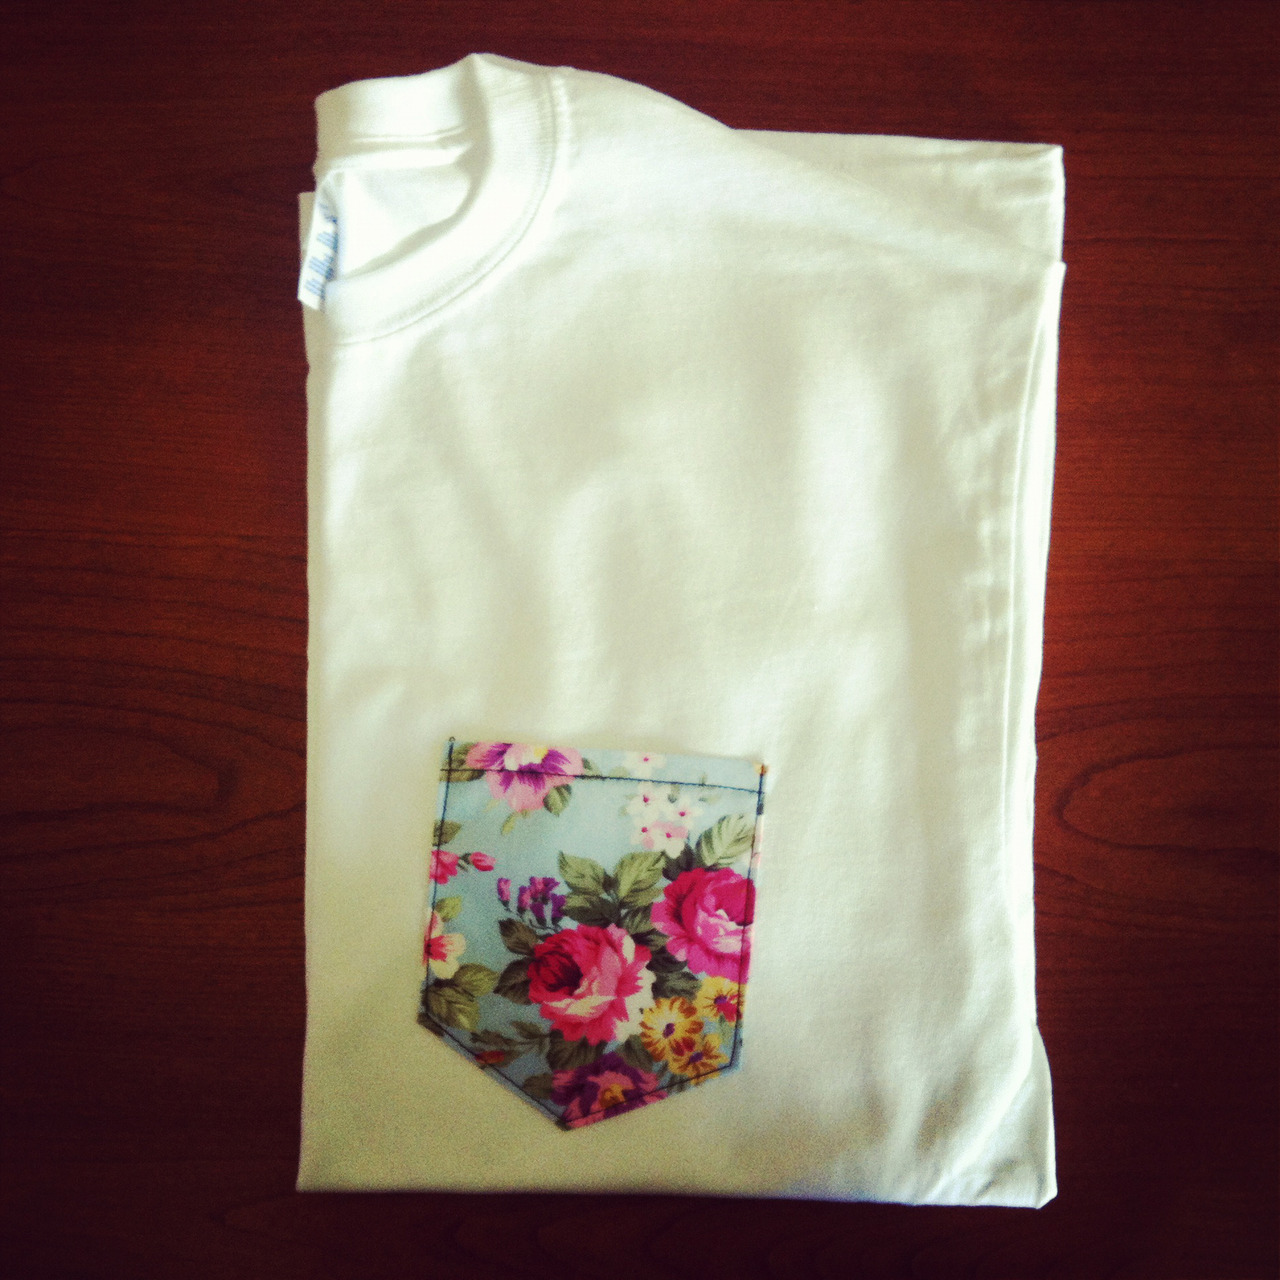 Patchwork Apparel, Floral print pocket shirt. Pick it up from our webstore now for only £12. http://patchworkapparelstore.bigcartel.com/